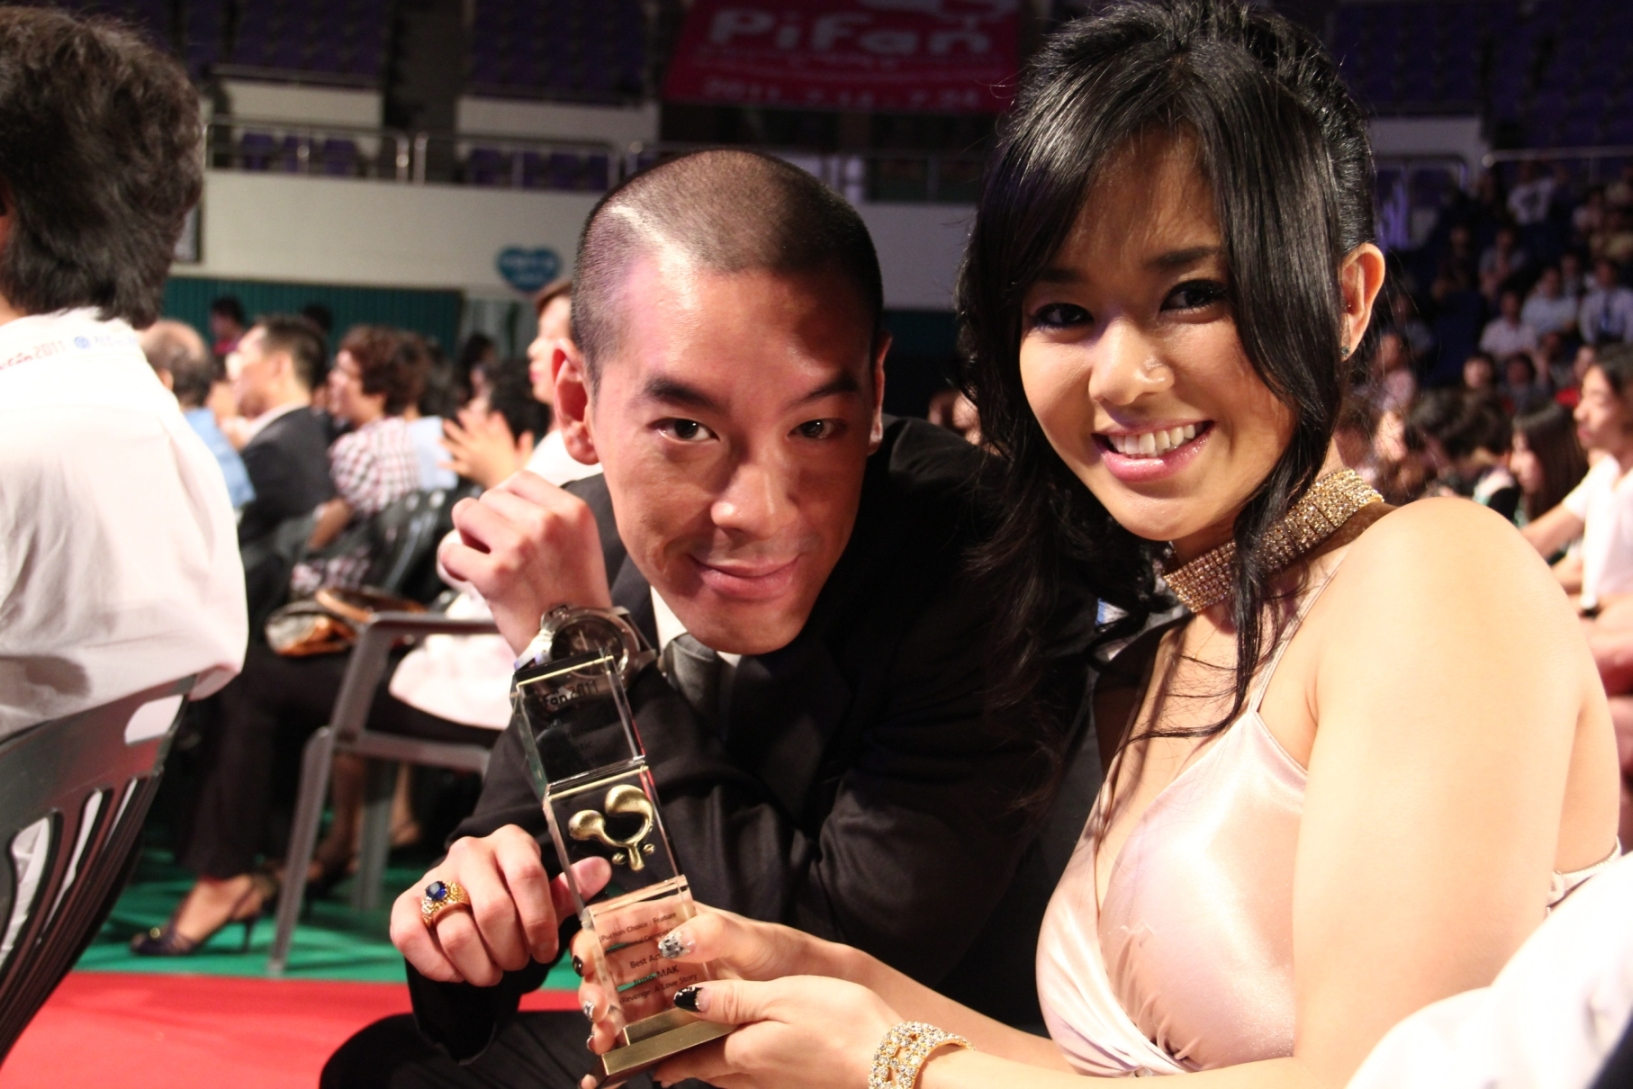 Filejuno Mak And Sora Aoi With Juno Maks Award At Pifan 20110722 Jpg